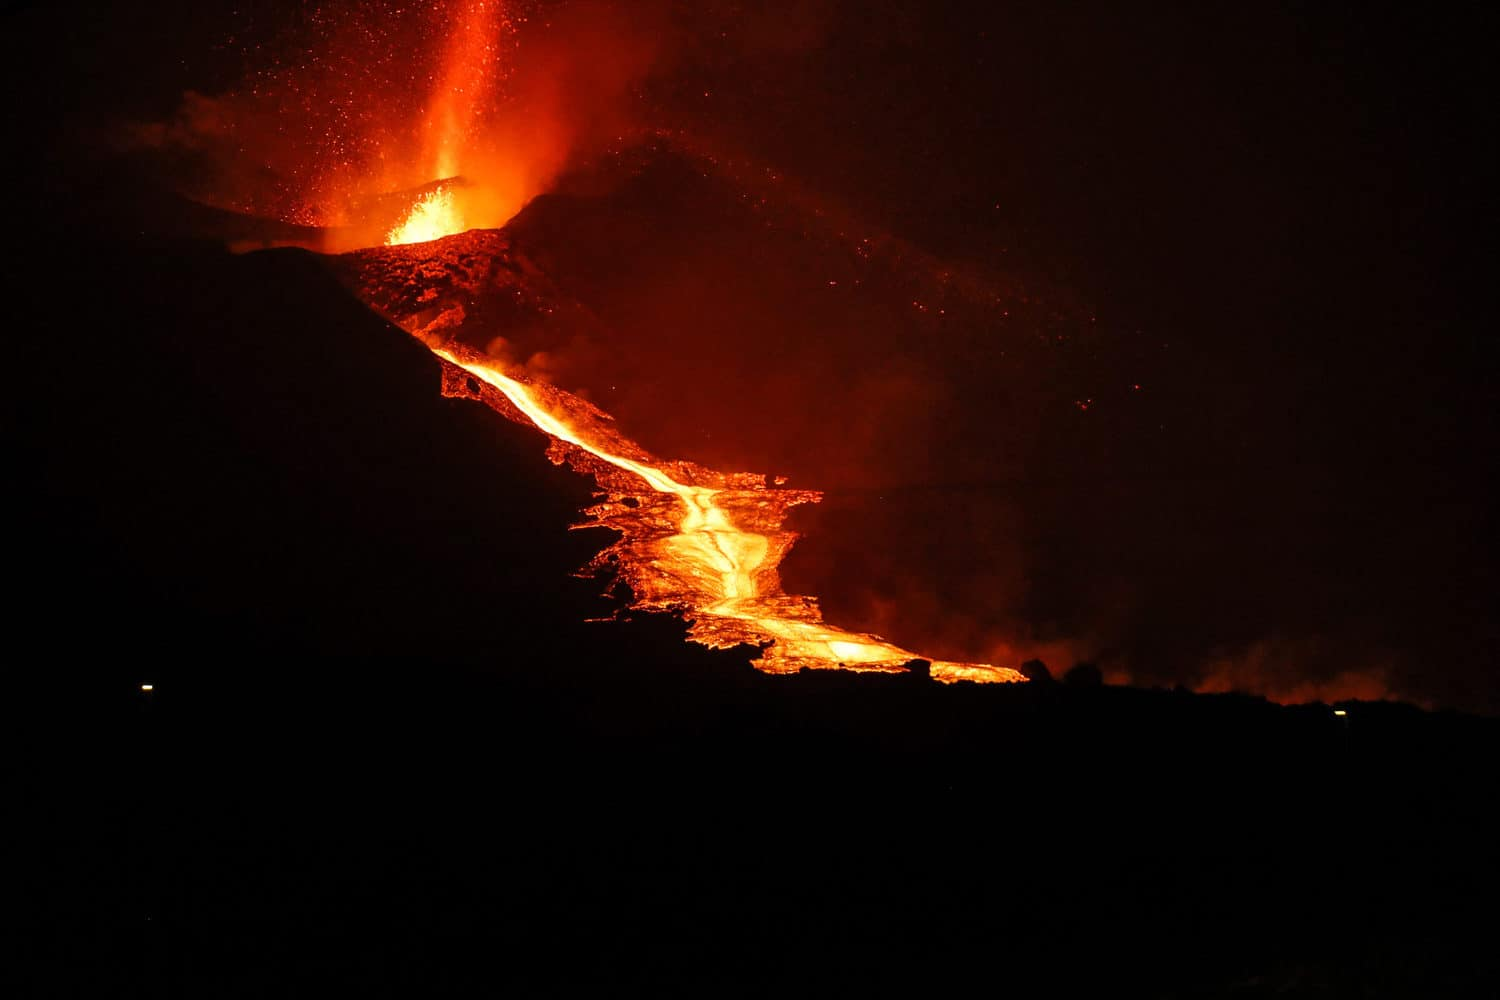 """This handout photograph taken and released by the Spanish Military Emergency Unit (UME) on October 9, 2021 shows the lava flow produced by the Cumbre Vieja volcano, in the northern area of the Canary island of La Palma on the night of October 8. (Photo by Luismi Ortiz / various sources / AFP) / RESTRICTED TO EDITORIAL USE - MANDATORY CREDIT """"AFP PHOTO / LUISMI ORTIZ /"""